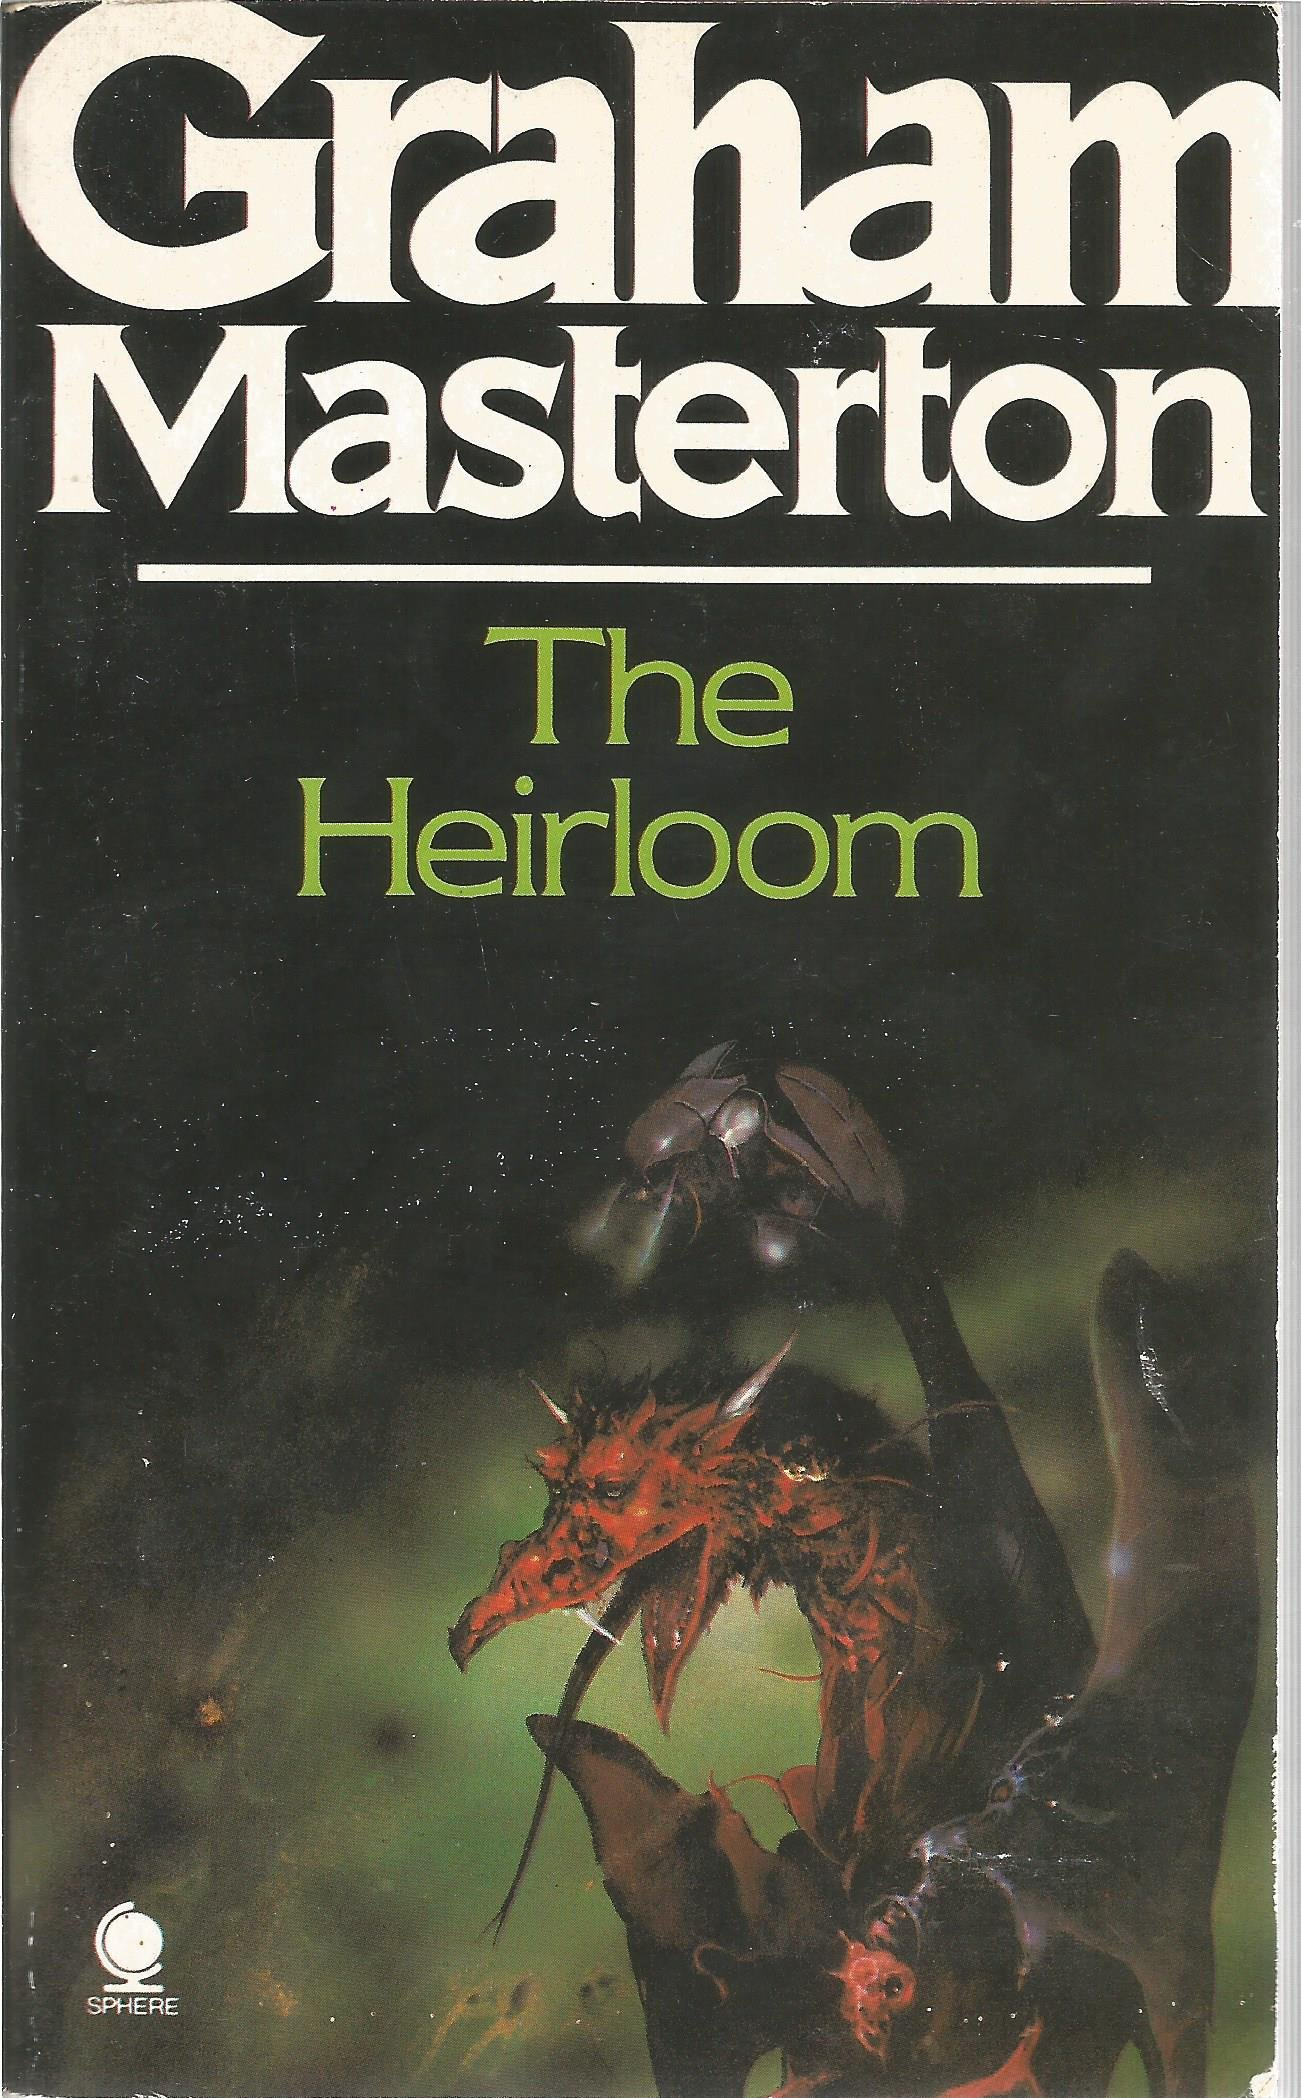 Graham Masterton signed book The Heirloom. Signed on